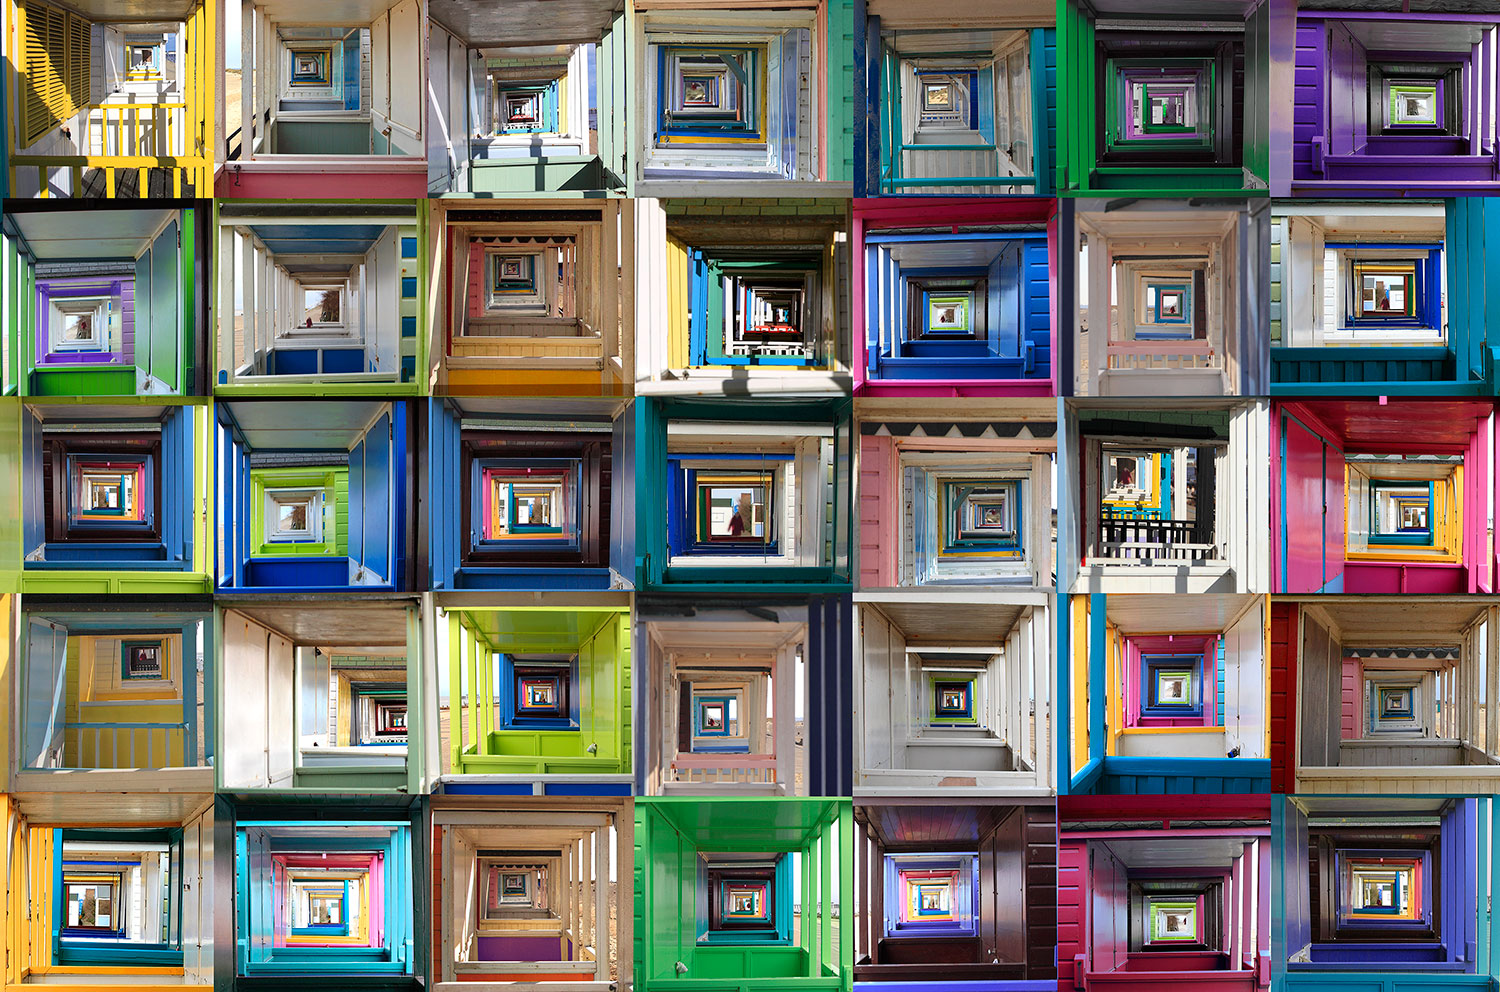 """ Kaleidoscope "" 114x75cms . Imagined place by architectural photographer Nicholas Gentilli"